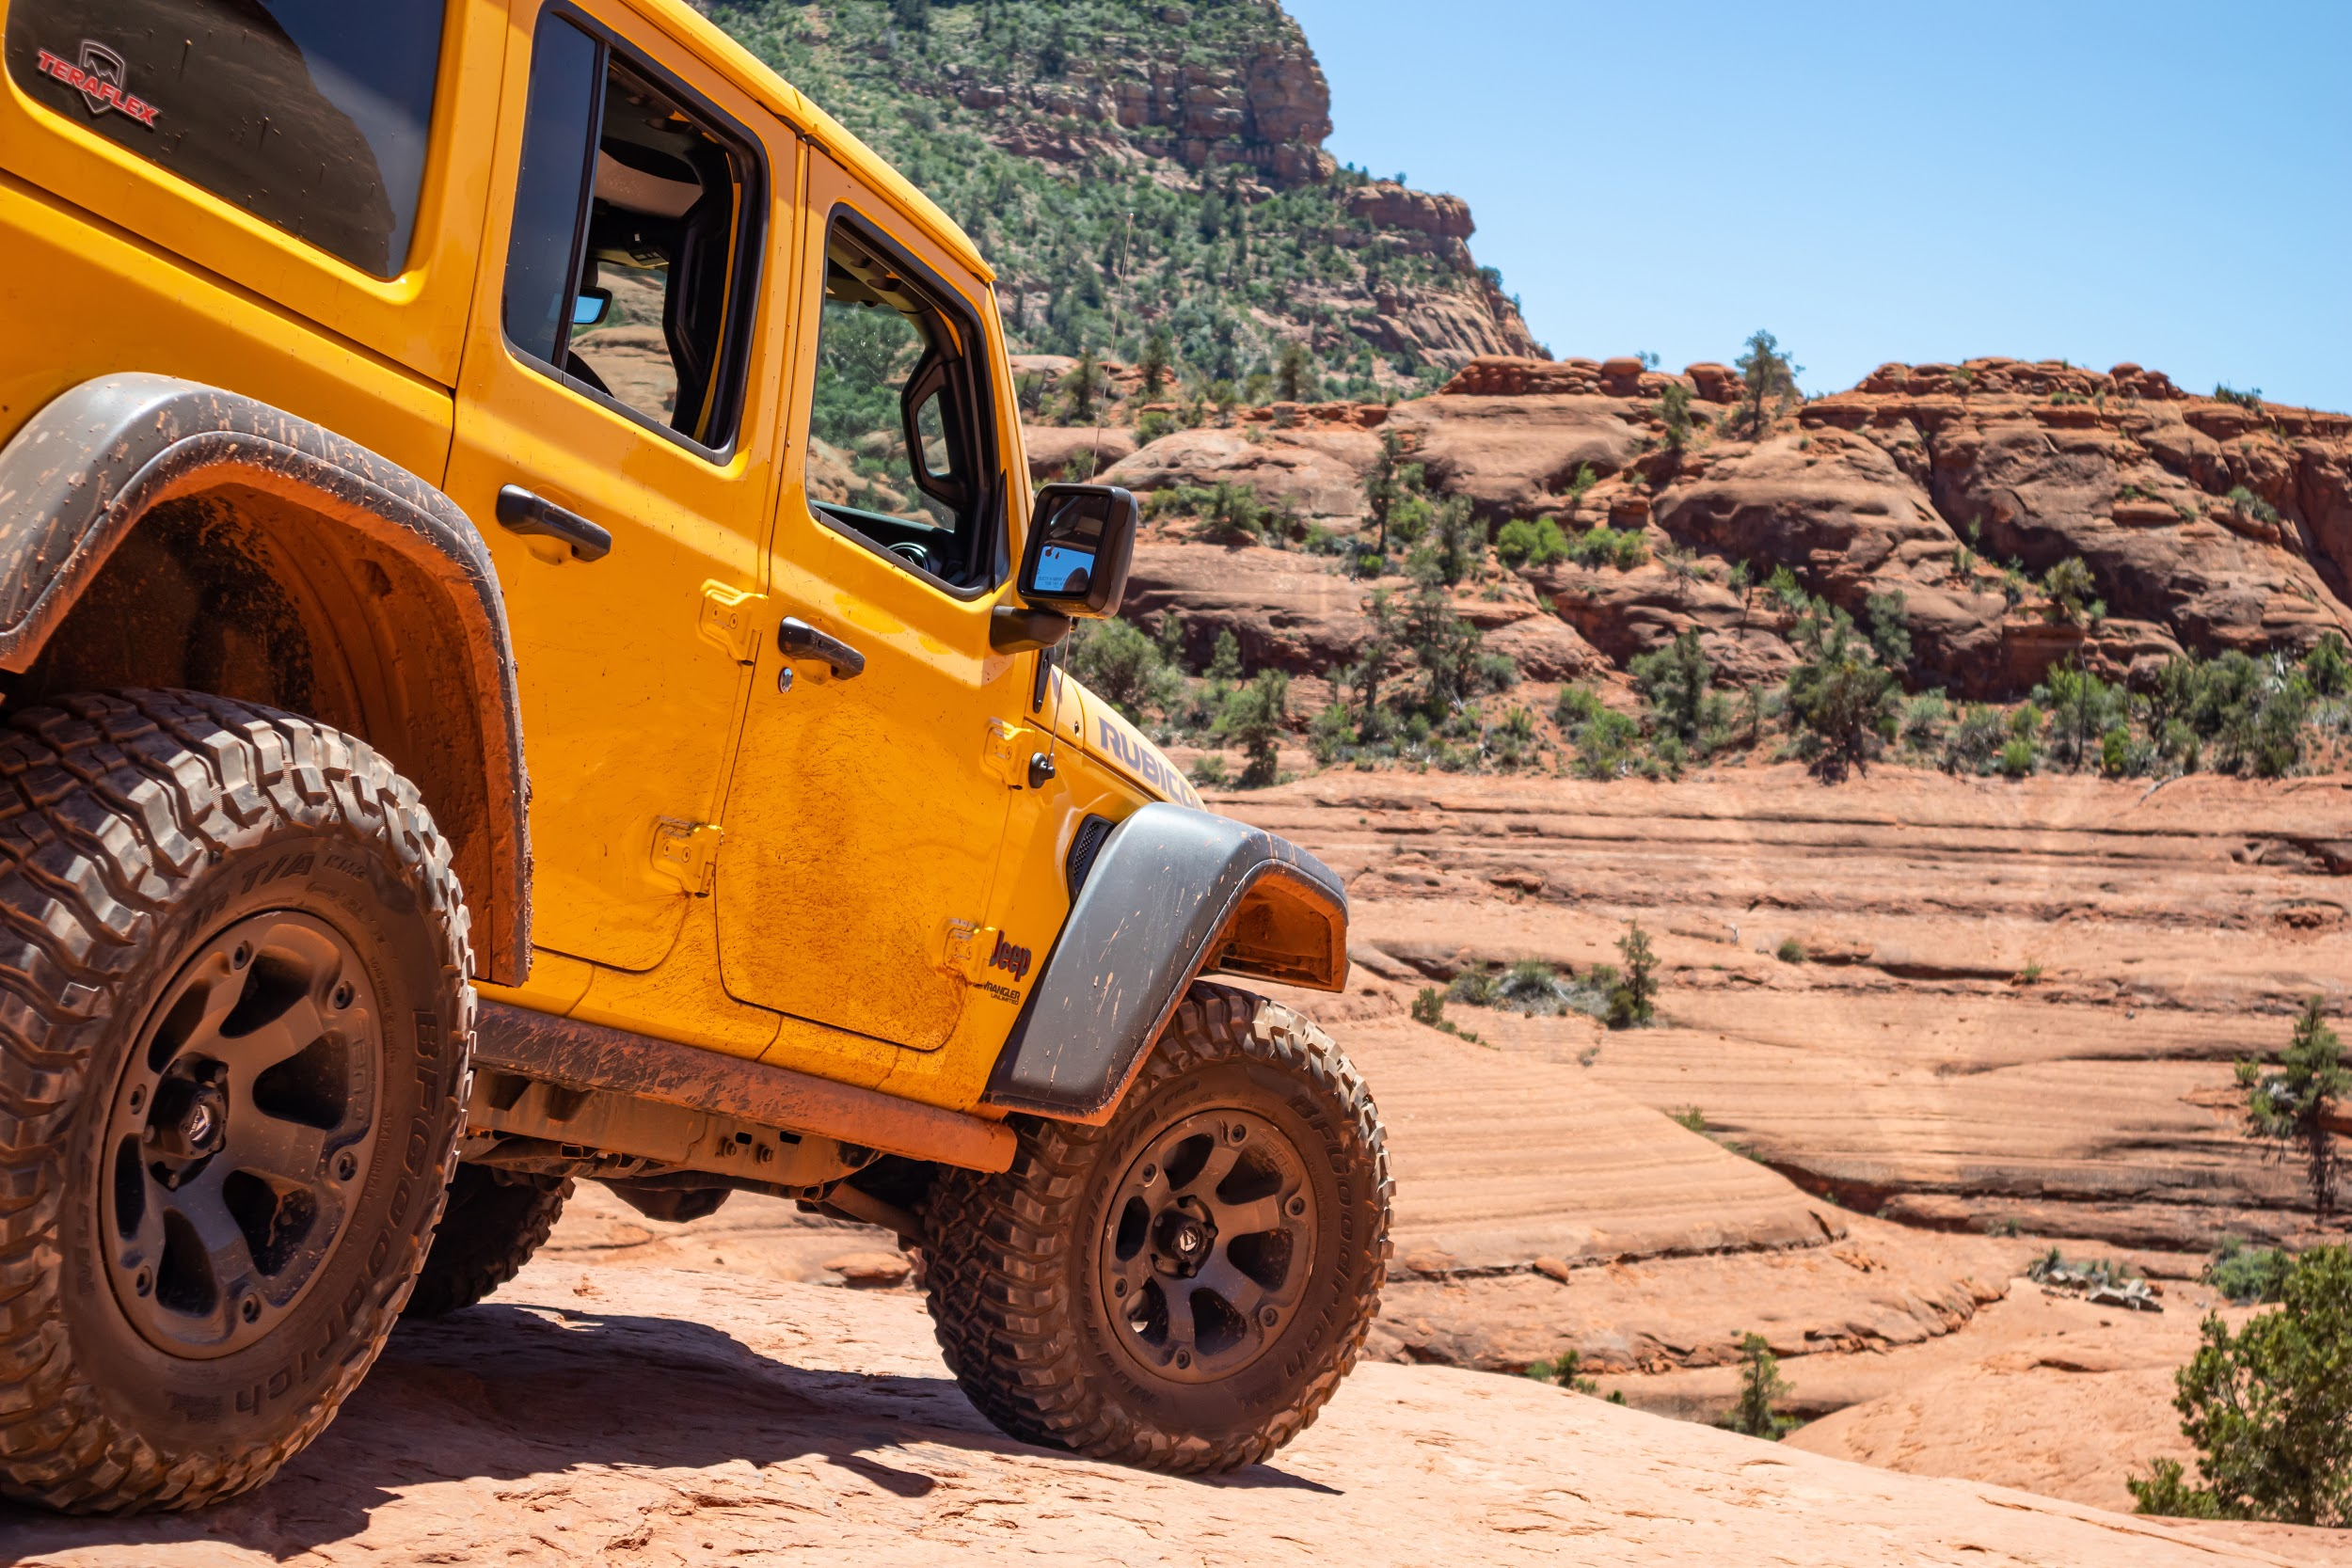 Best Places to Go Off-Roading